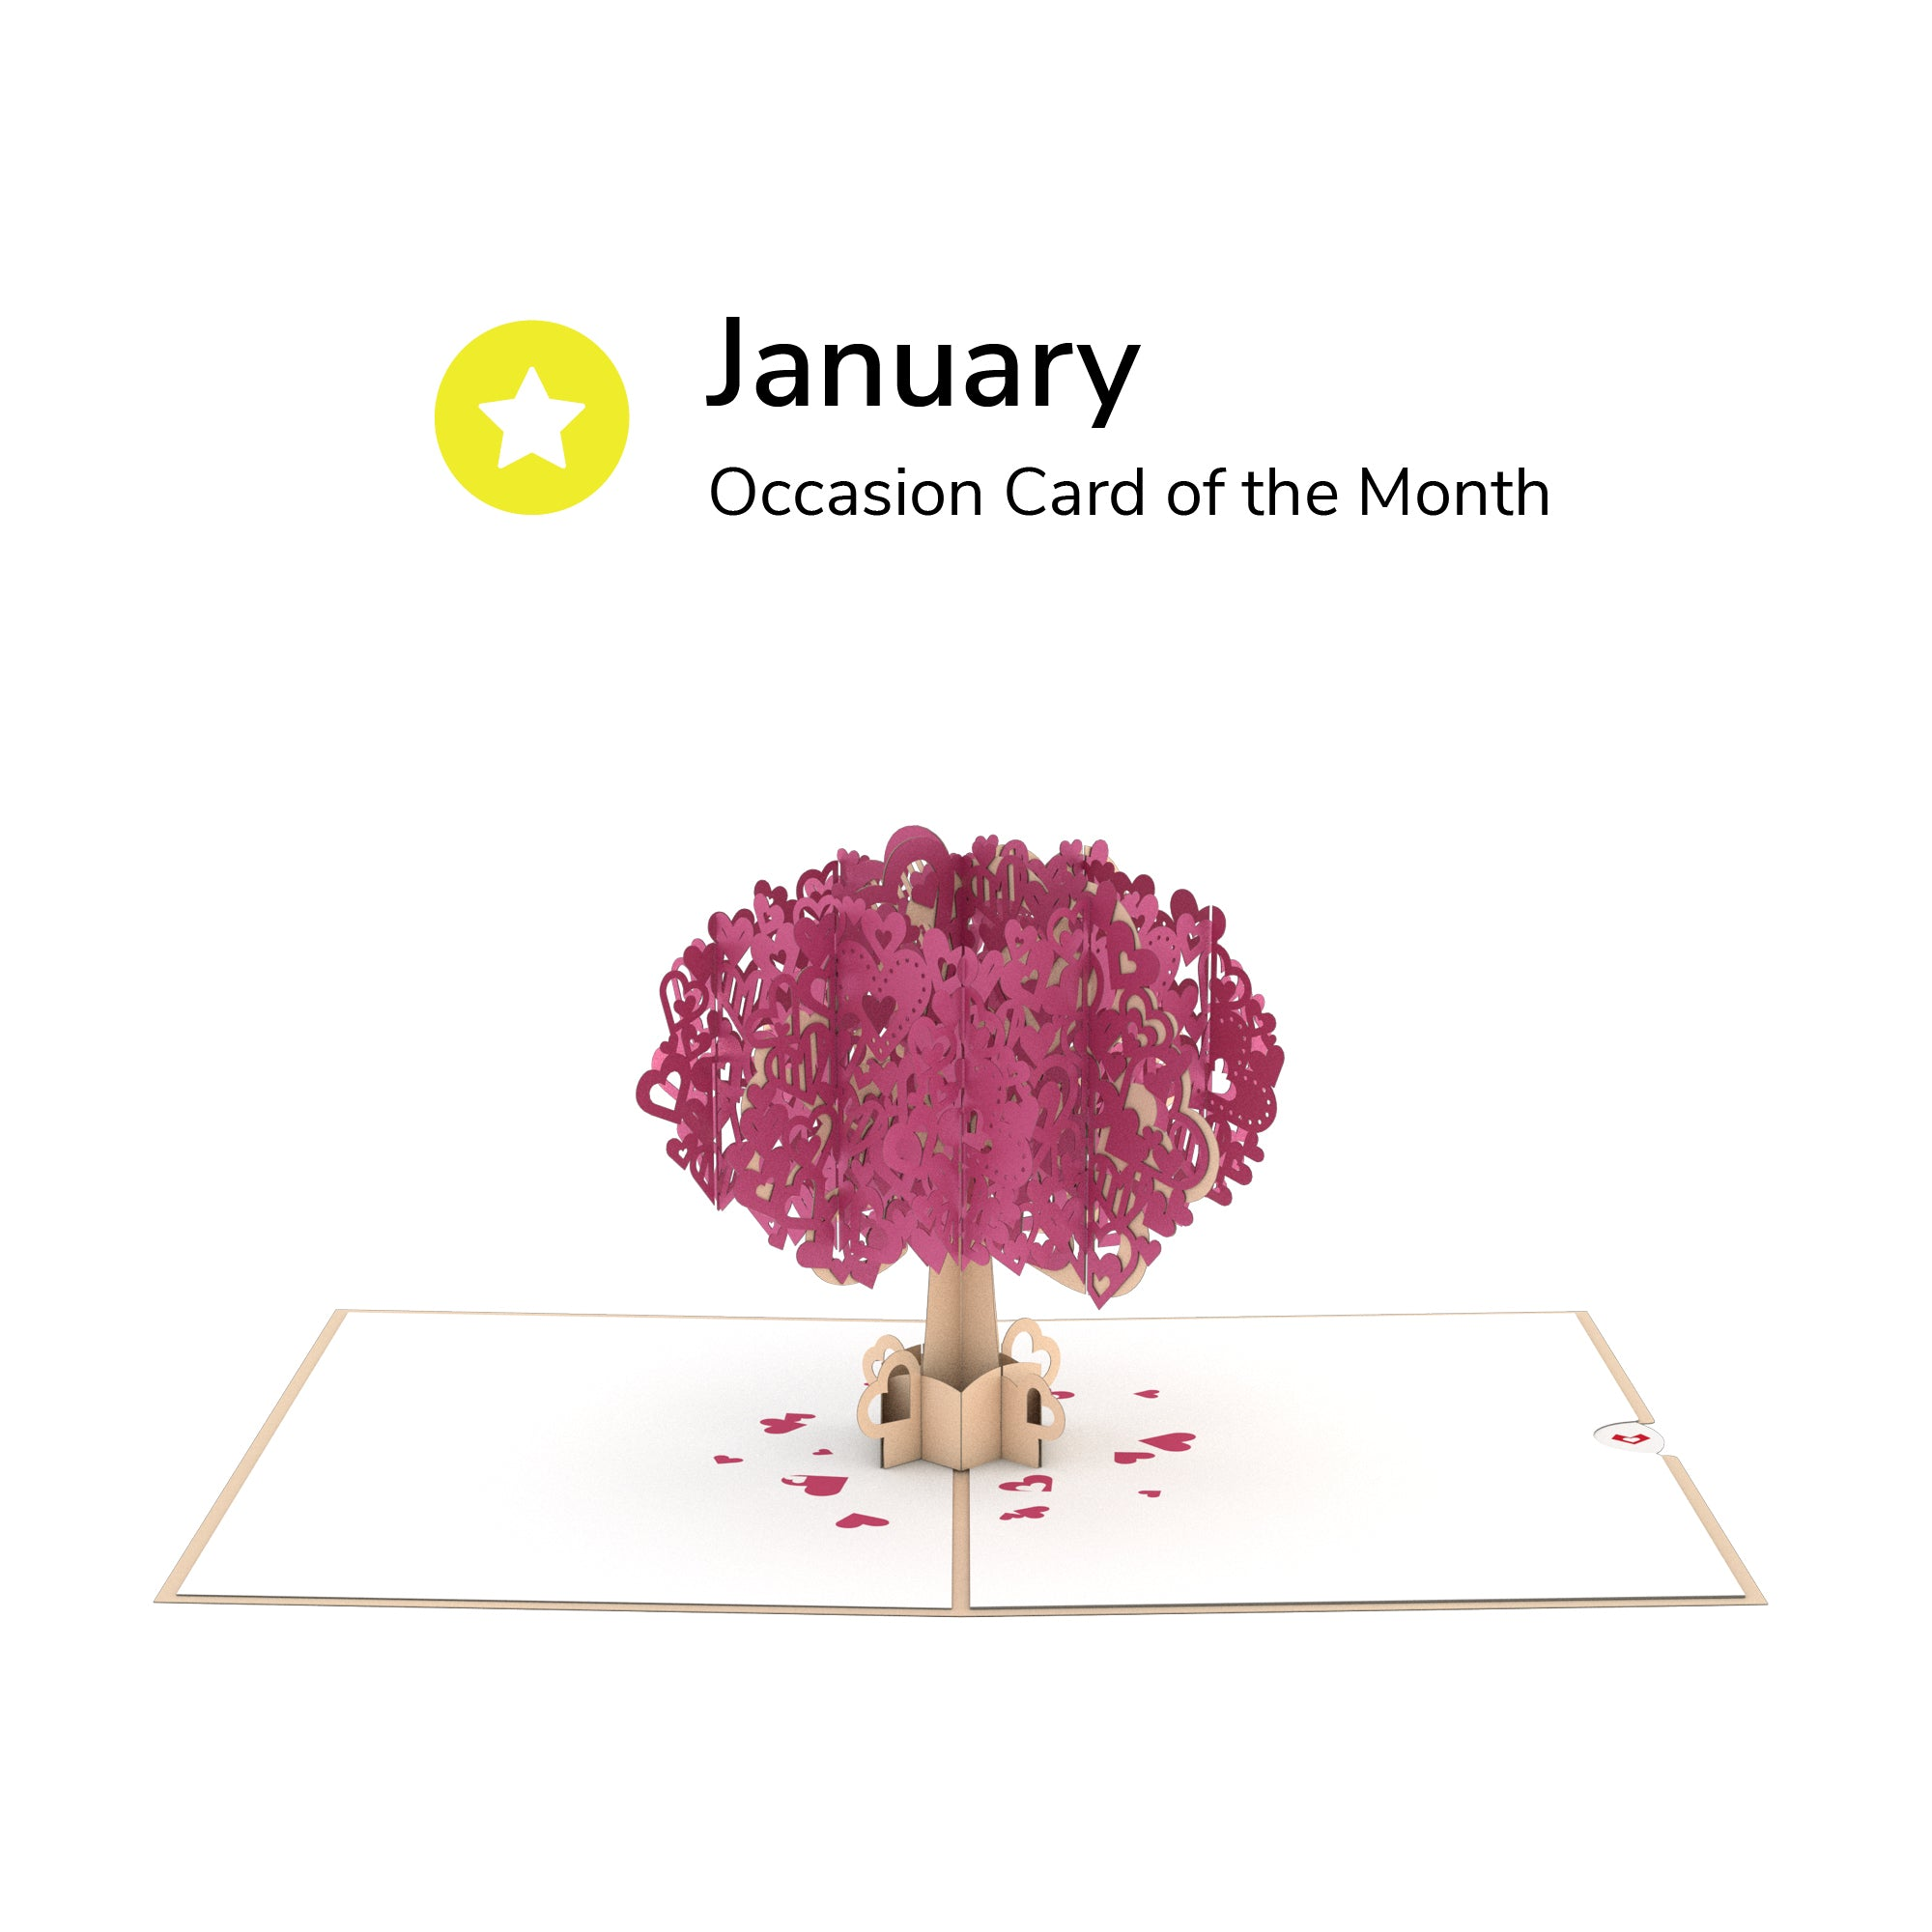 Card of the Month - Occasions